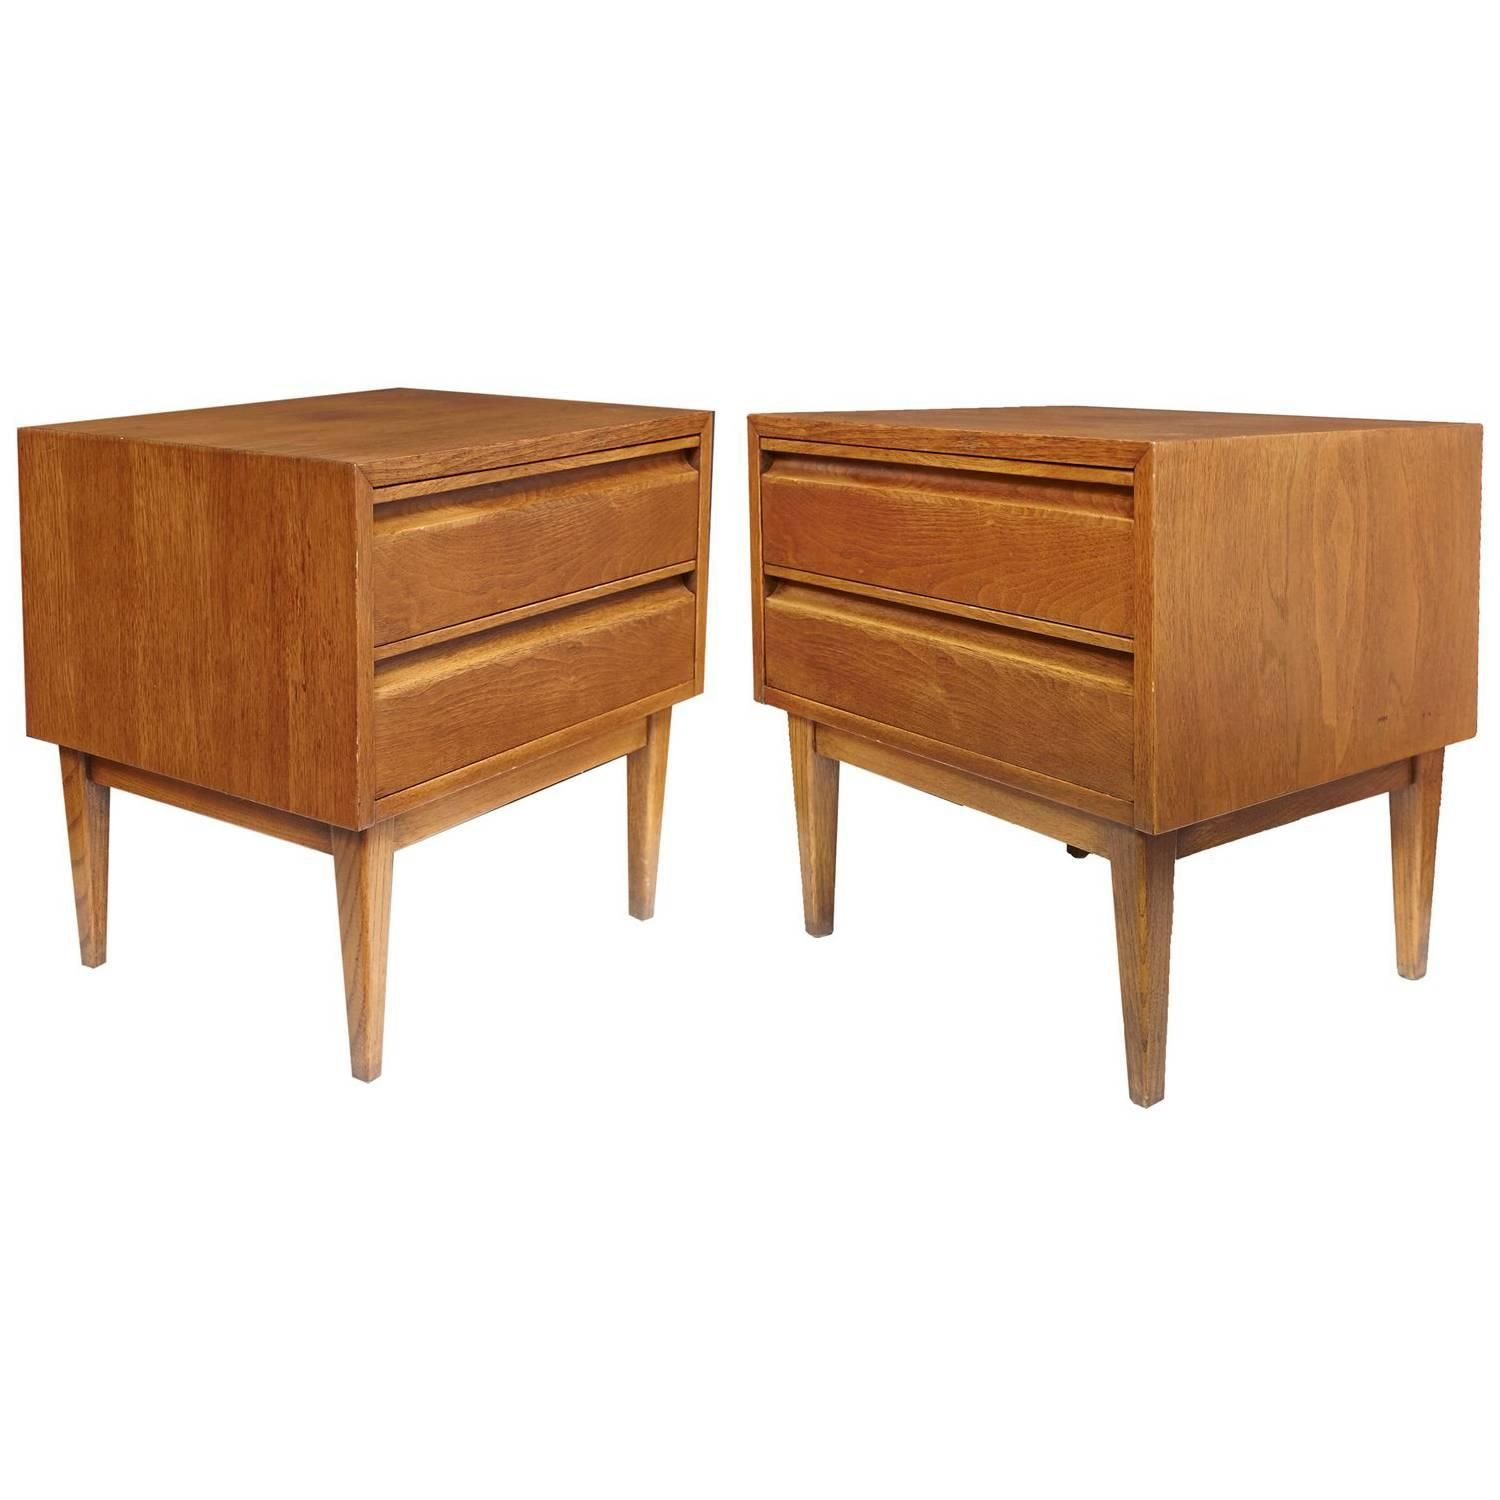 751c22788a5f Pair of American of Martinsville Mid-Century Modern Night Stands or End  Tables